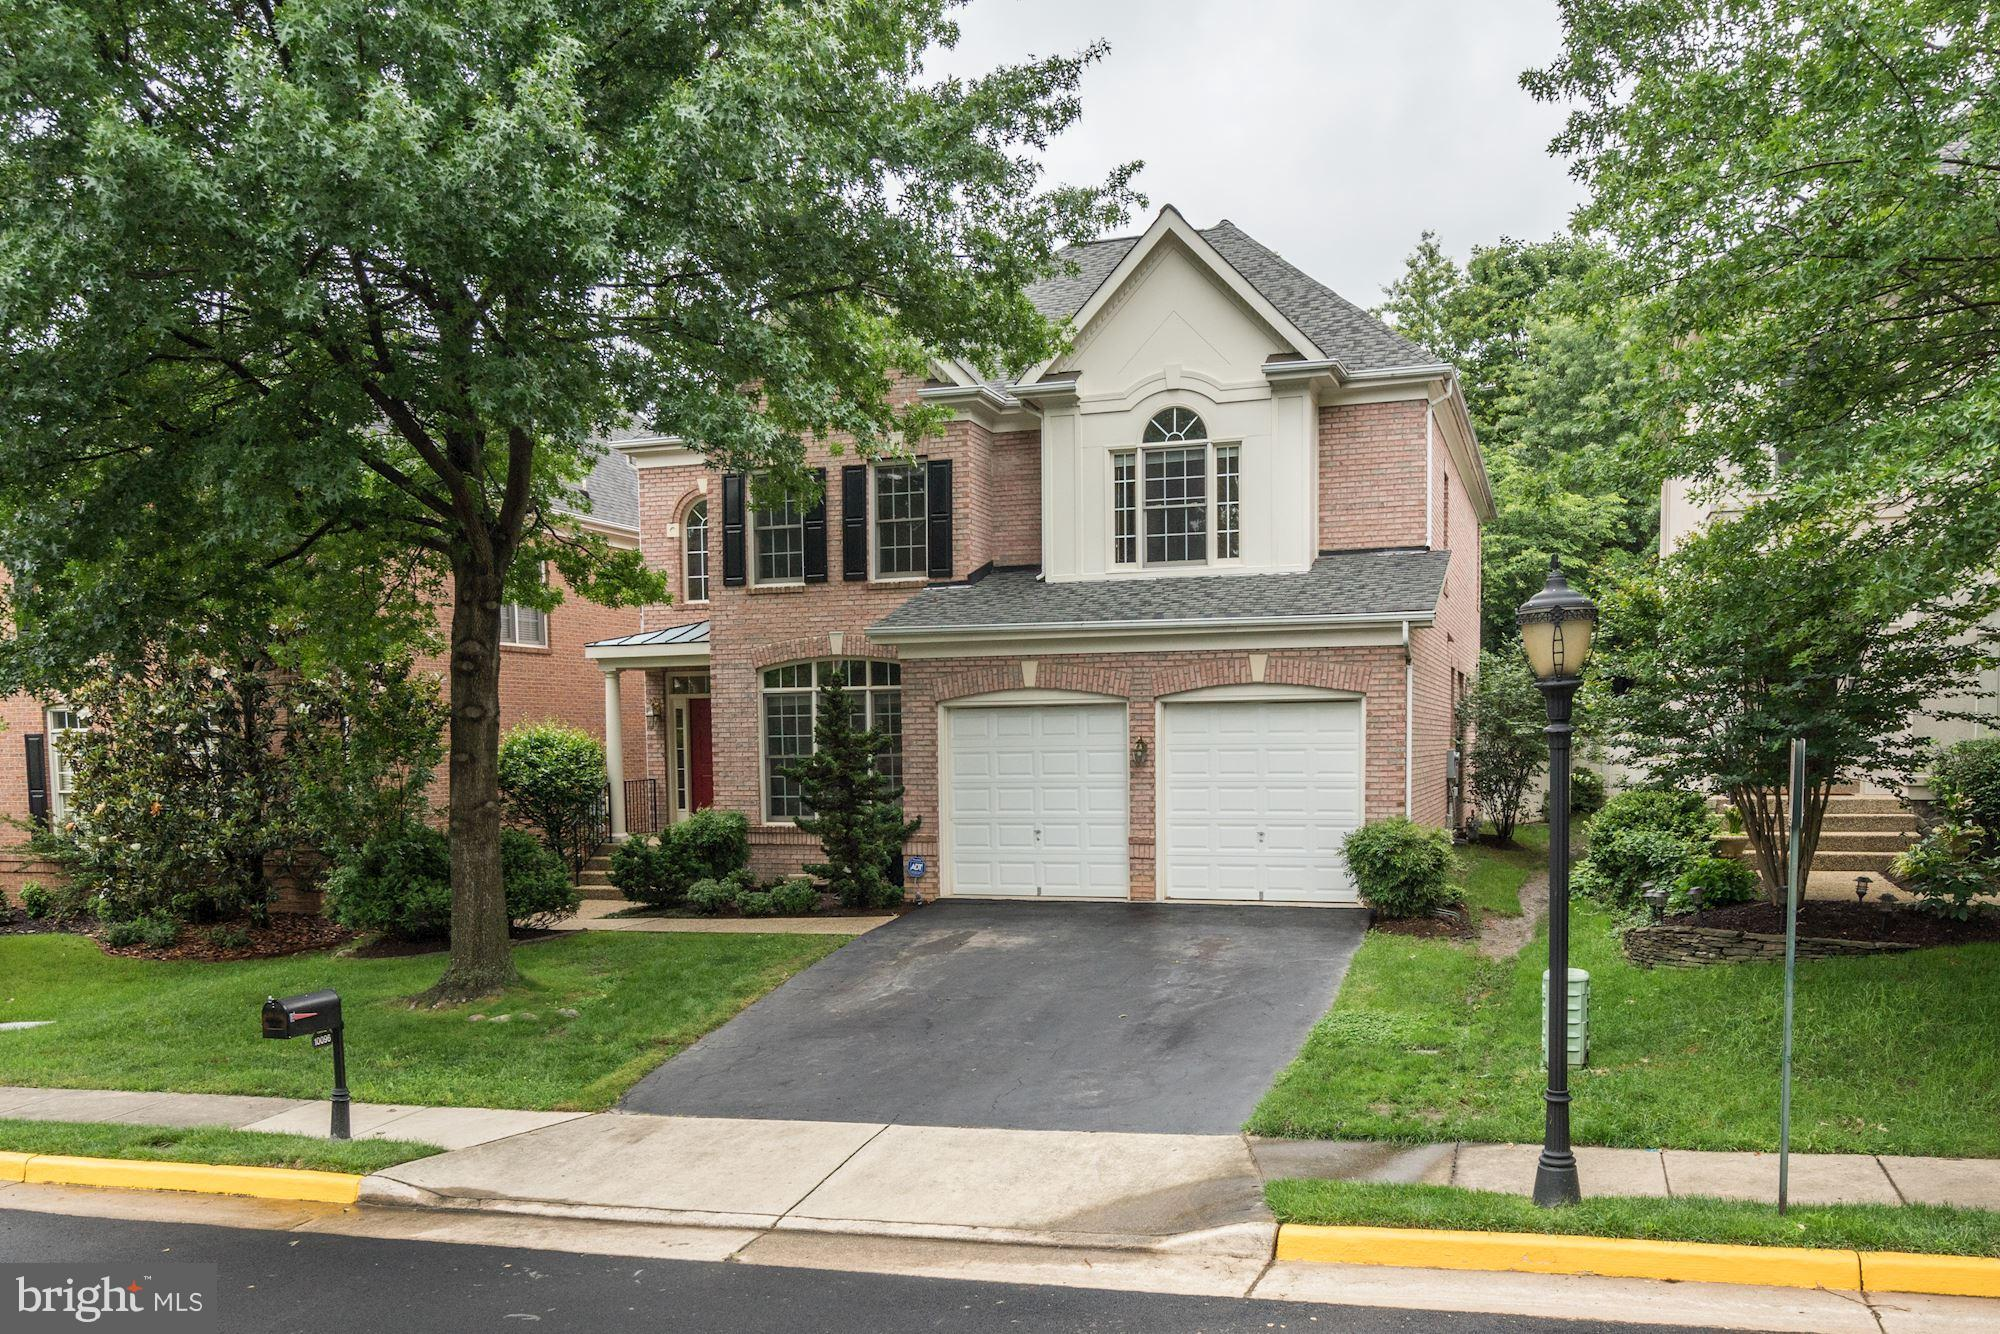 Immaculate 5 BR,4.5 BA home+2 car garage in Farrcroft! Gorgeous HW Flrs. Formal LR, DR+ office w/ built-ins. Expansive kitchen w/ granite counters opens to Fam Room w/ gas FP + built-ins. Upstairs, master suite w/ 2 walk-in closets. 2nd ensuite BR+ 2 more BRs w/ J&Jill BA. LL 5th BR, Rec Rm (w/pool table), Media Rm + wet bar. Updated systems! Farrcroft pool.Walk to downtown FFX City. OPEN SUN 2-4.